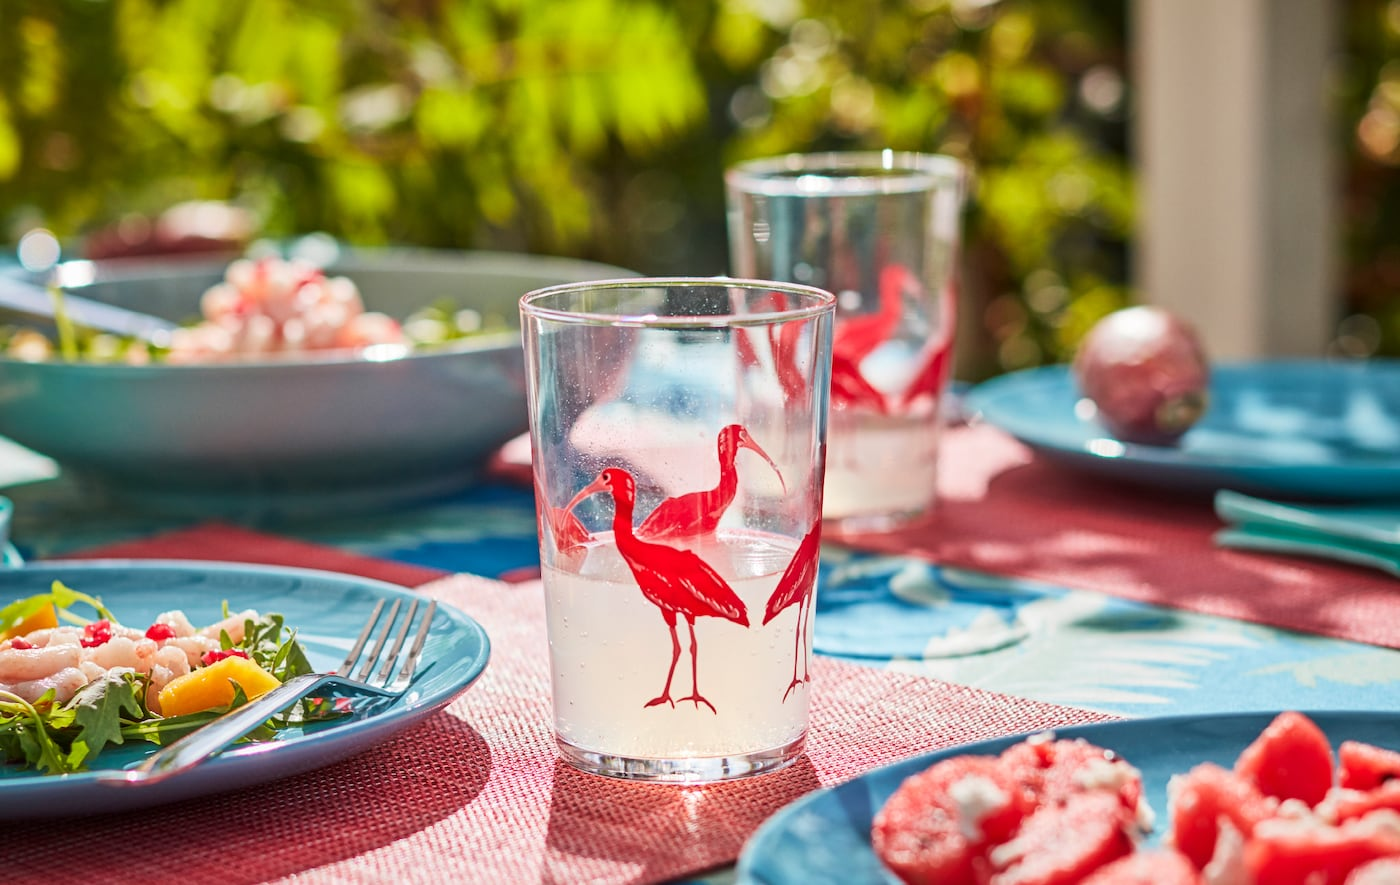 Sunlit table set outdoors with table and glassware in bold, summery colors and patterns. Light dishes on the plates.